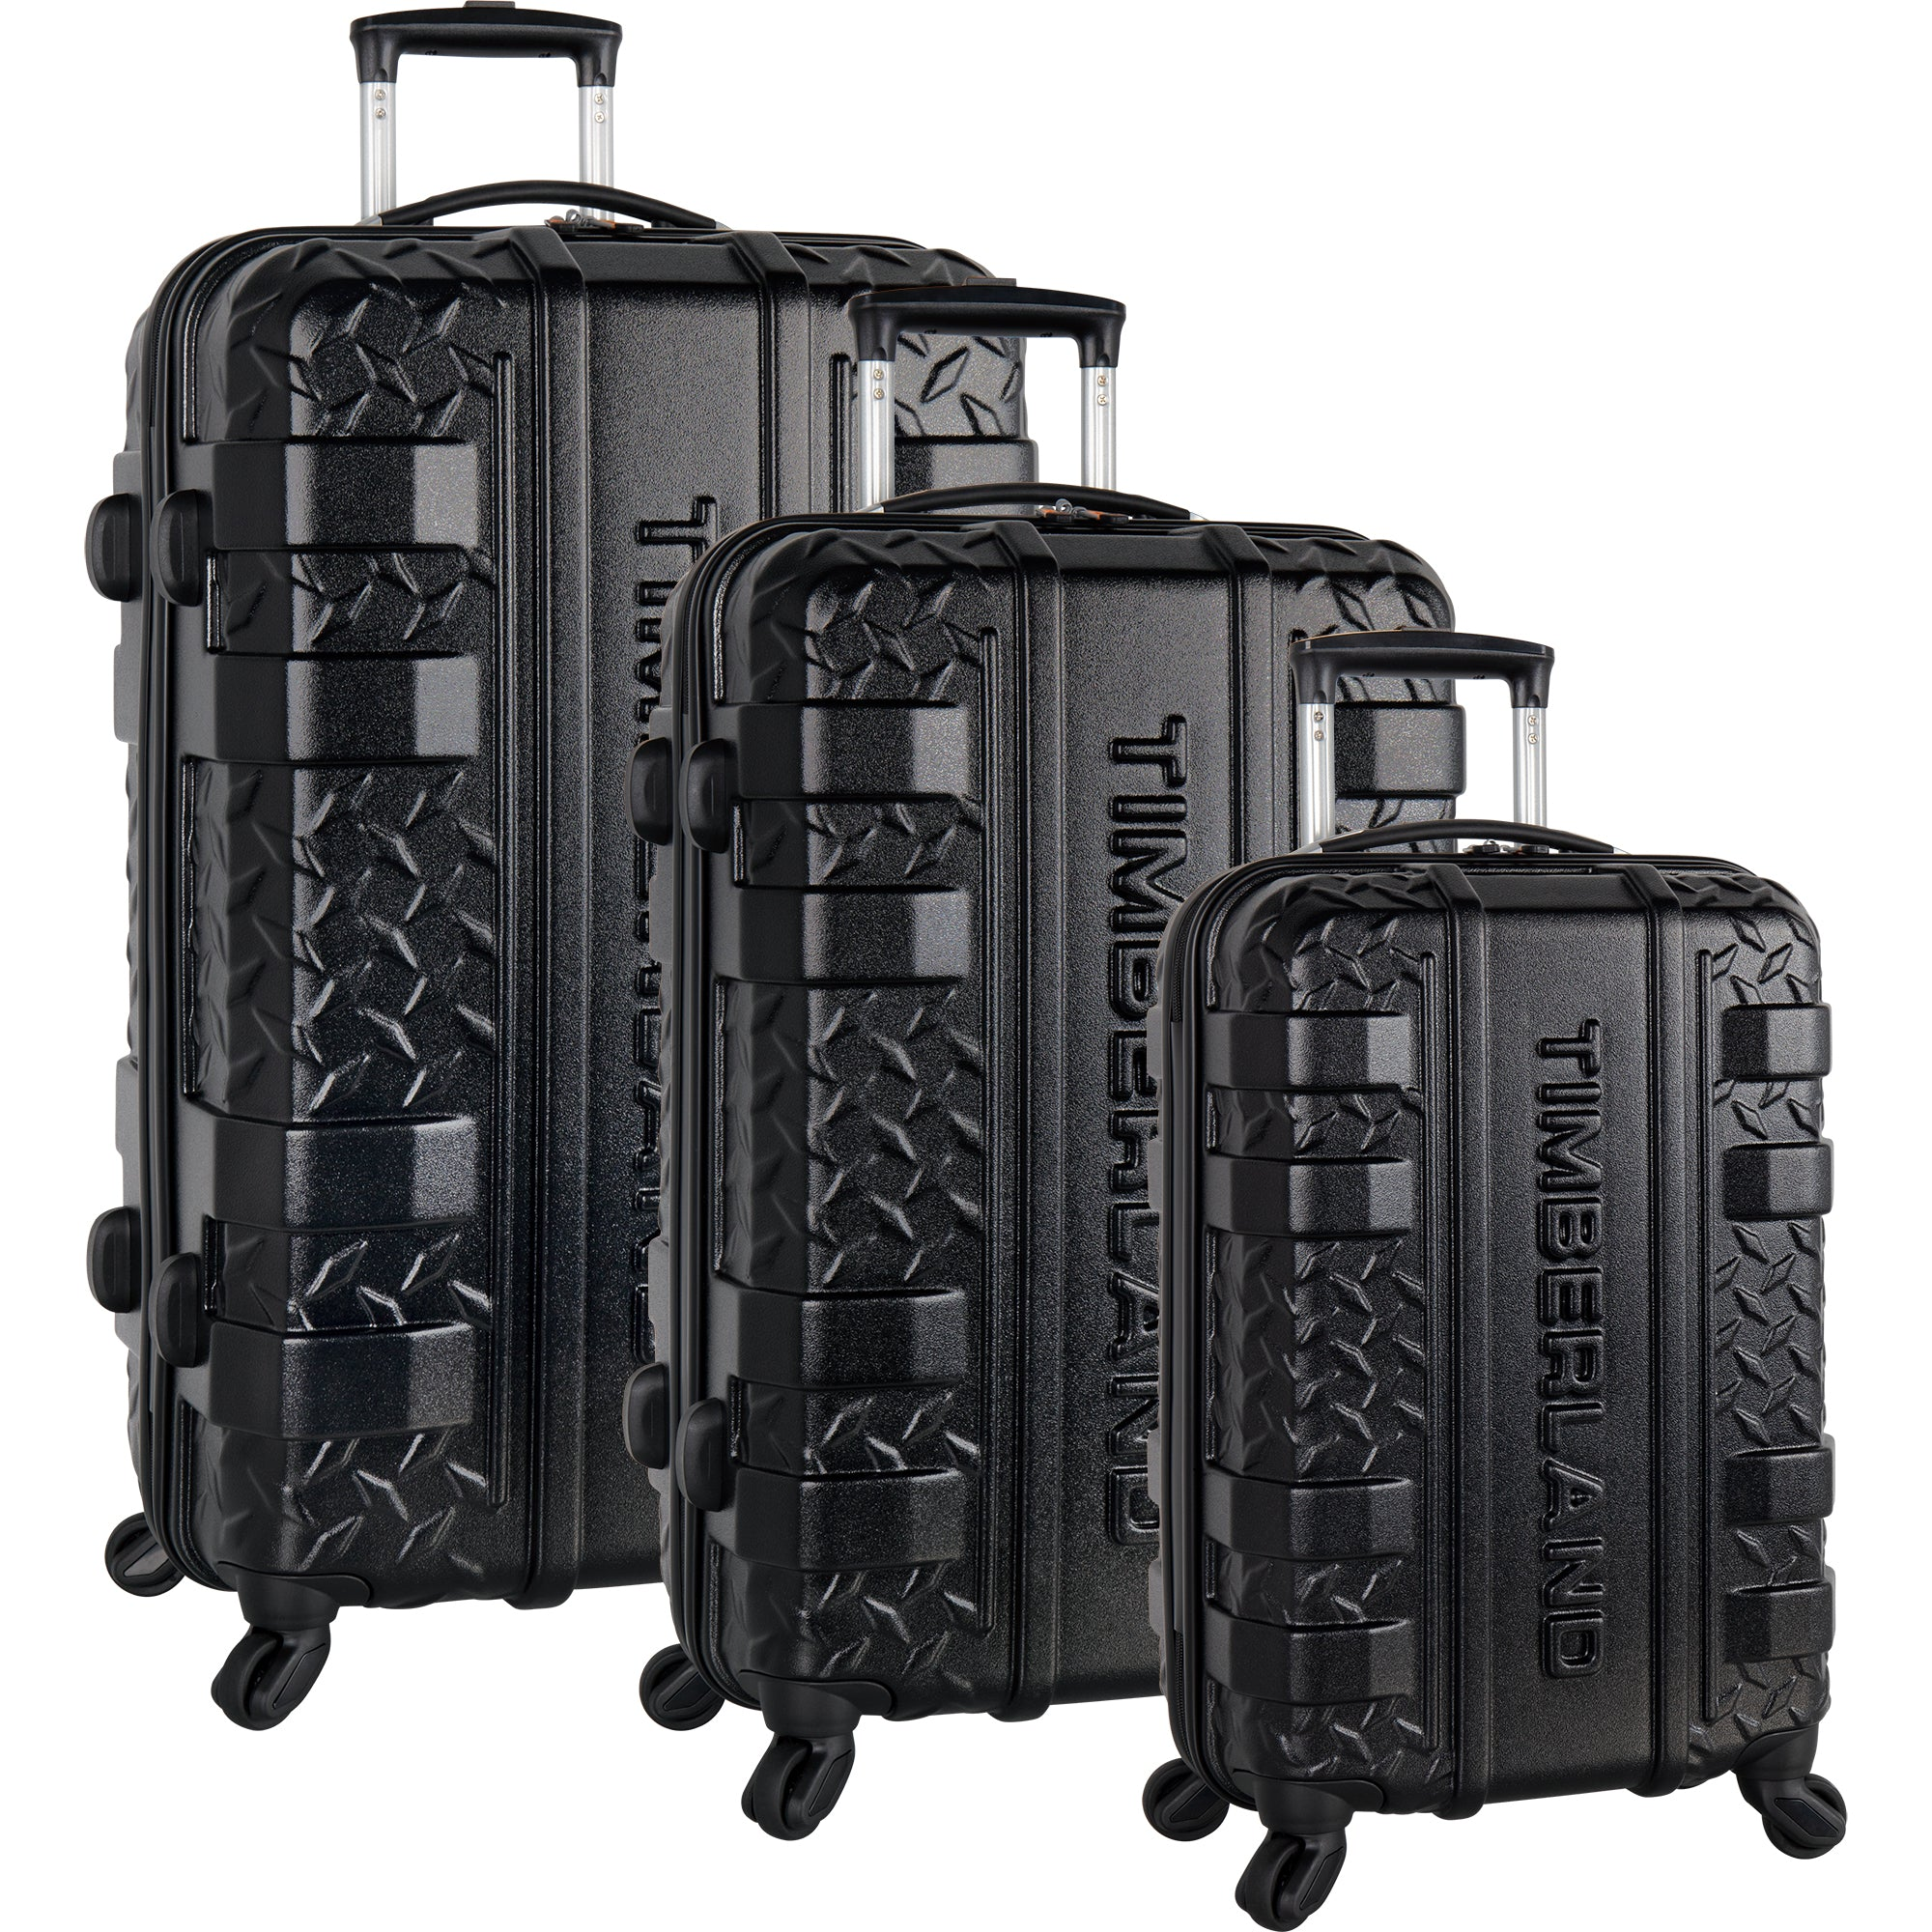 2407e90b51 Timberland Keele Ridge 3 Piece Hardside Spinner Luggage Set. Group Urban  Chic · Group Jet Black ...